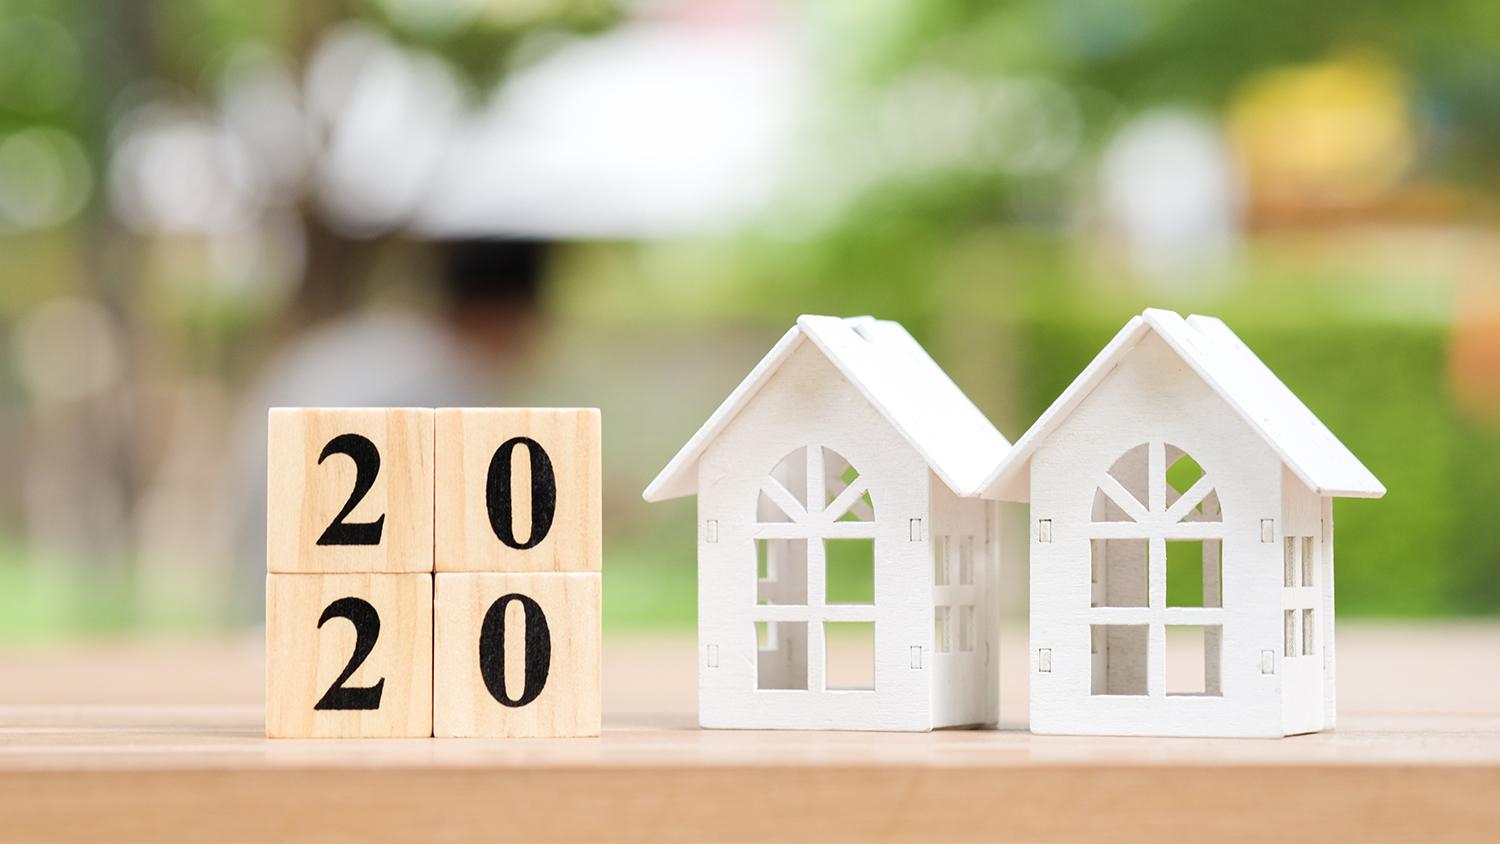 PREDICTIONS FOR THE 2020 REAL ESTATE MARKET